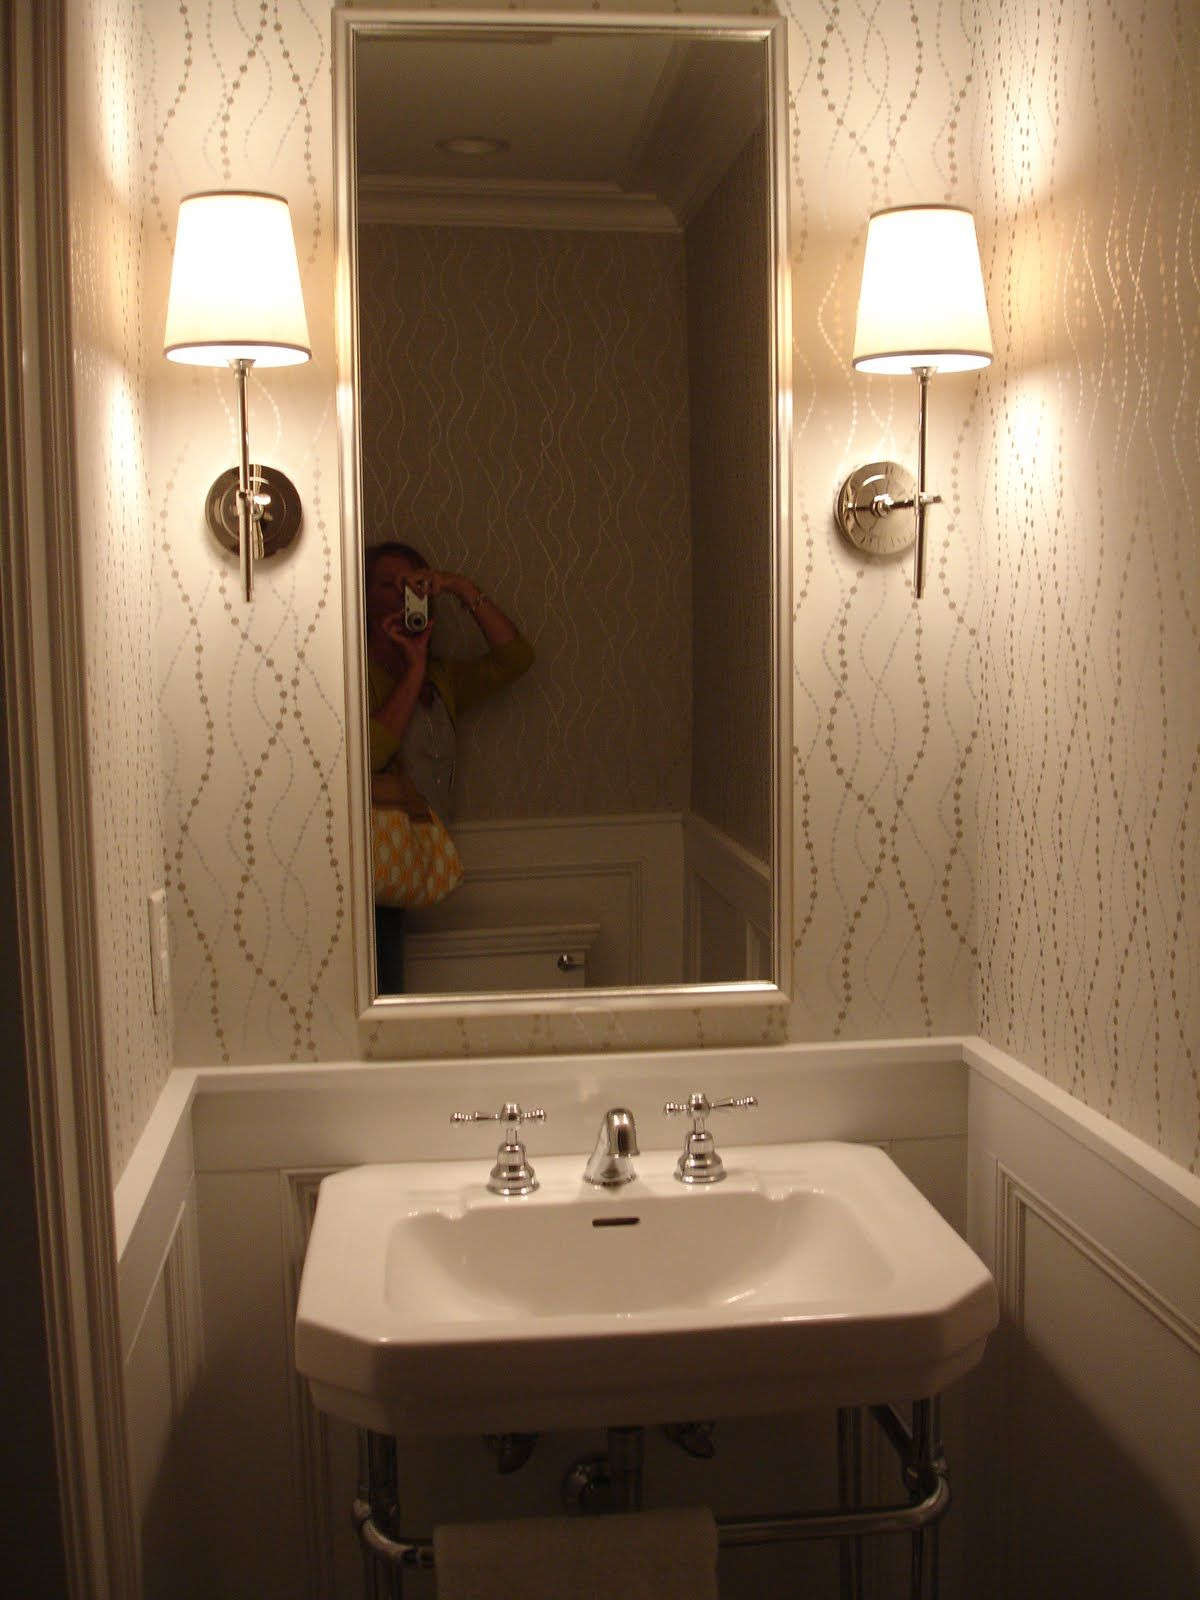 Powder Room Nice Wallpaper